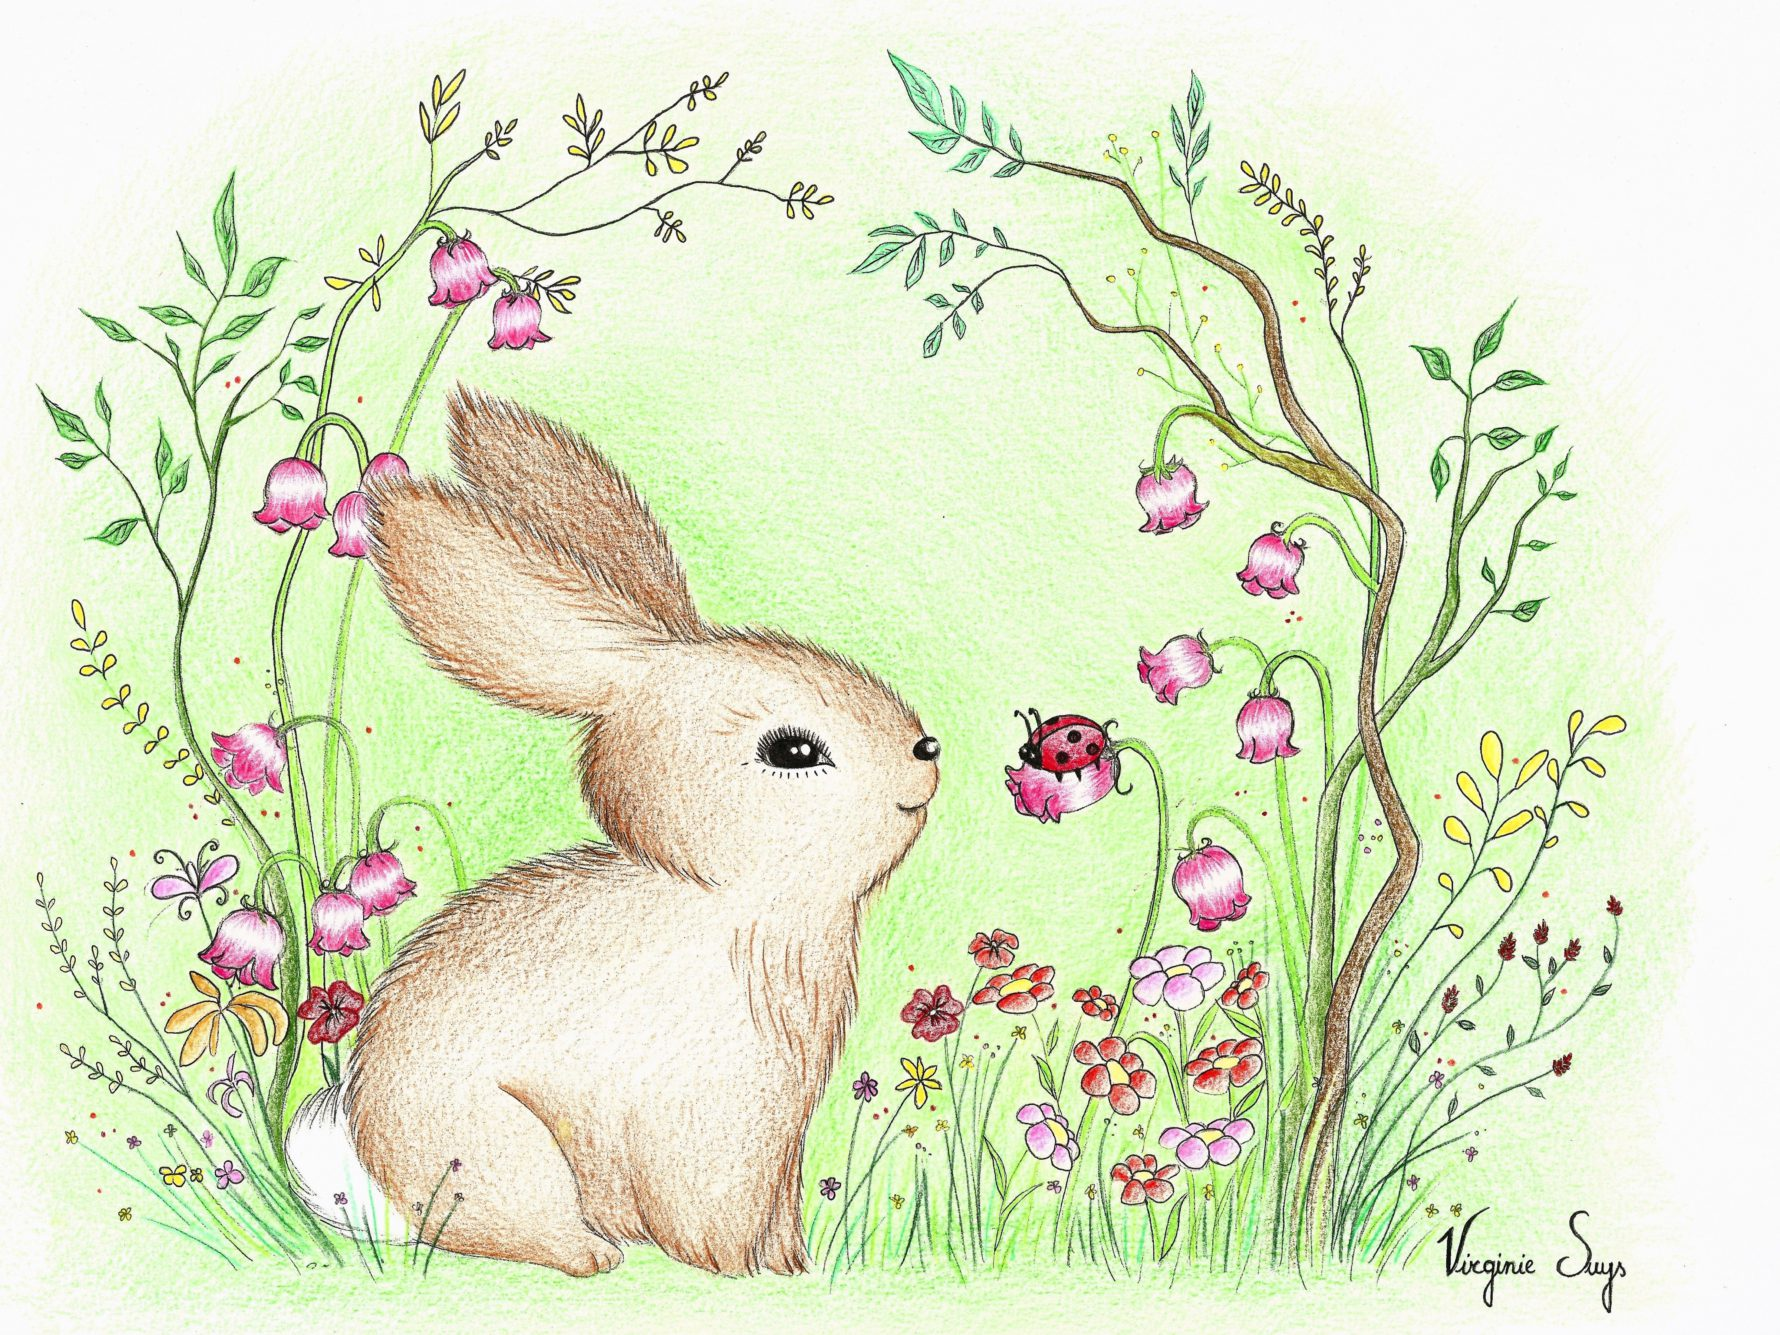 Virginie Suys Rabbit in flowers in green & pink illustration